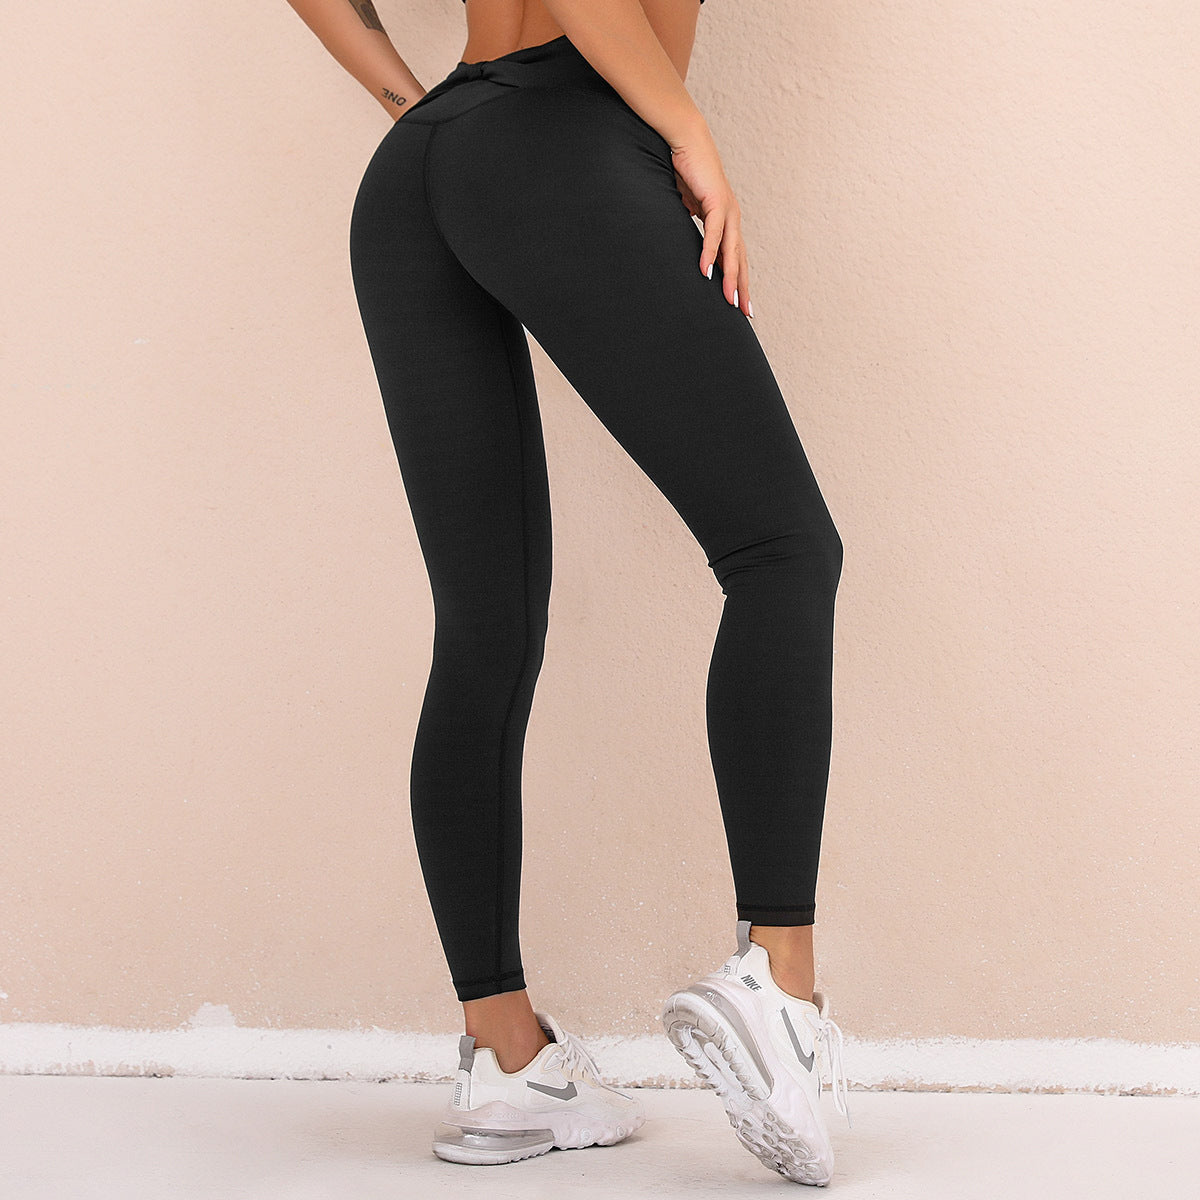 Bow Design Tight Elastic Sports Leggings - Ahanova Sports